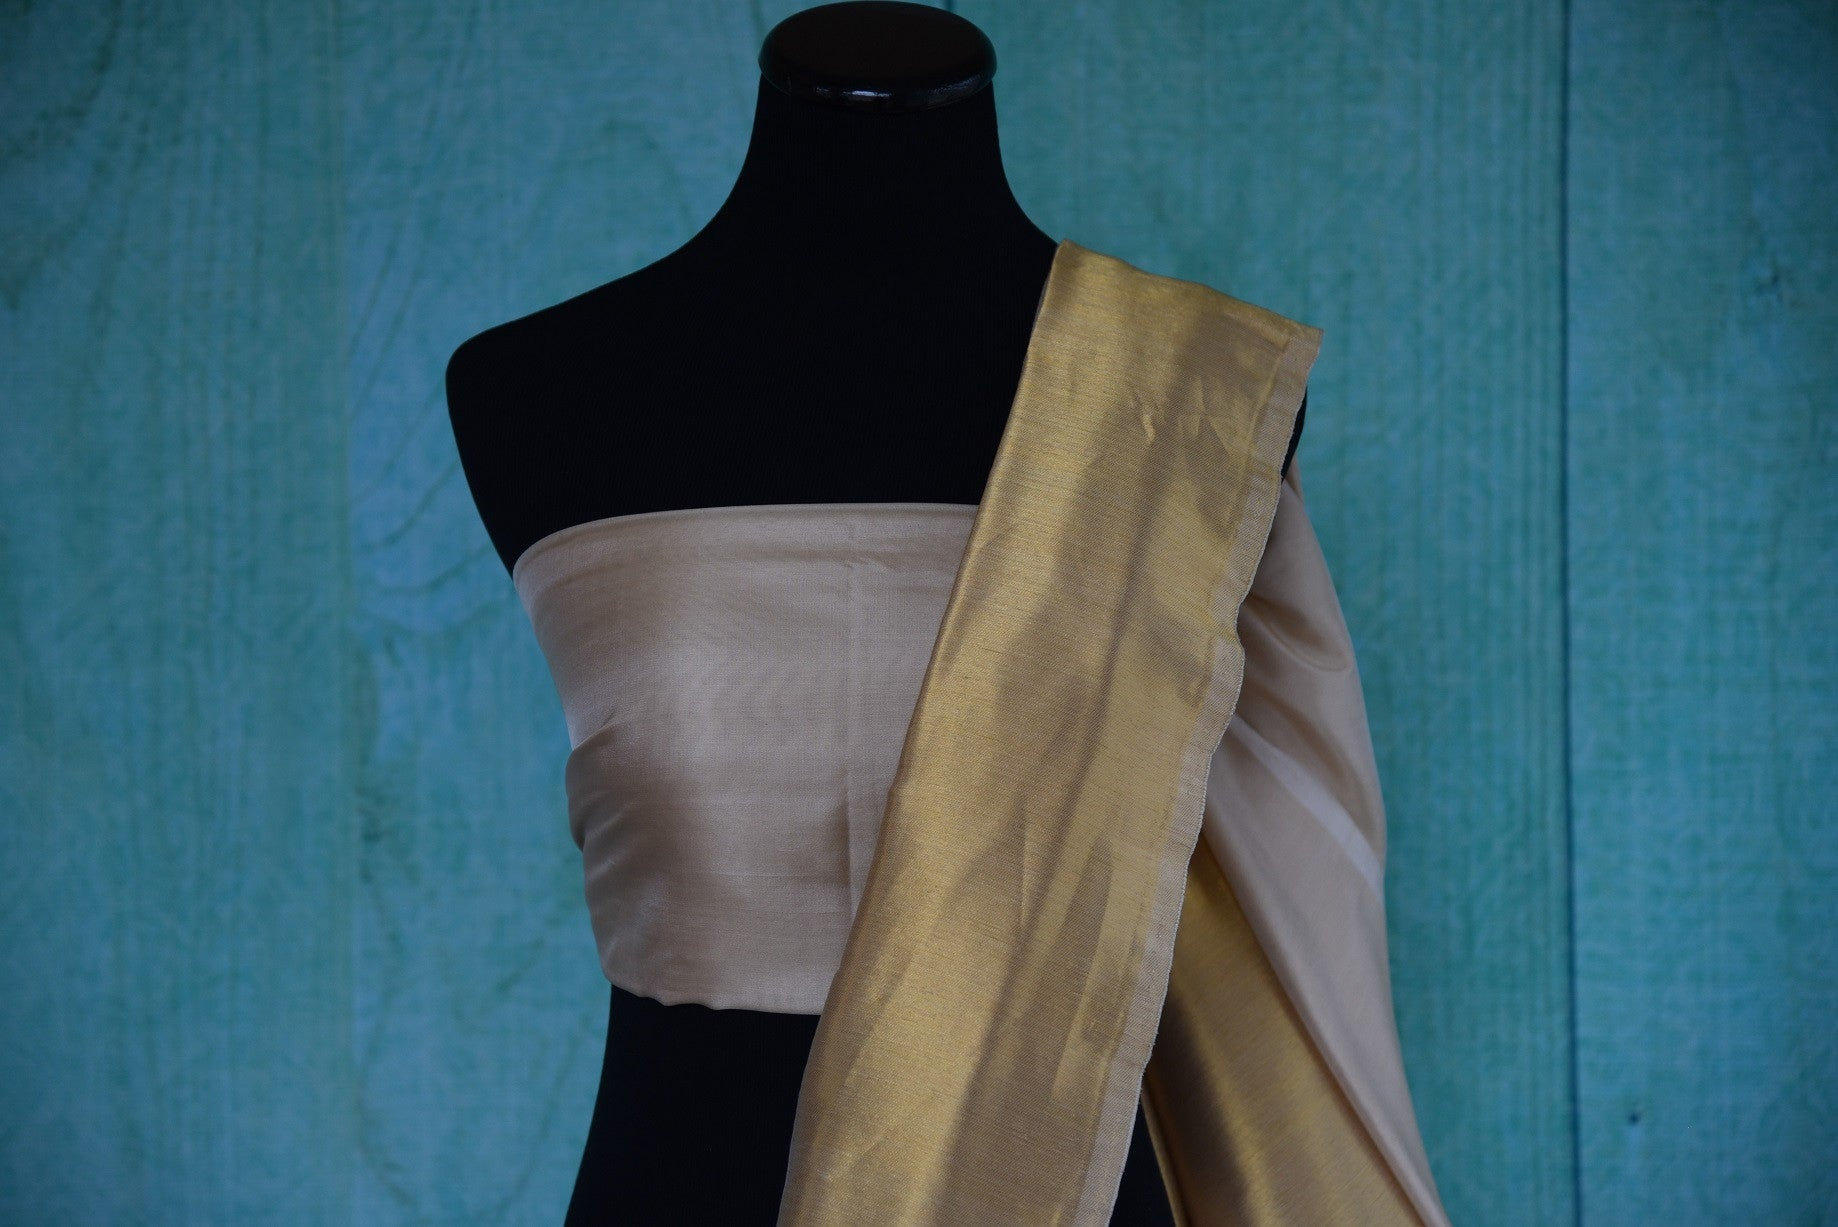 90D385 Off white and golden Banarasi silk saree available at our store Pure Elegance. This party wear saree will be an elegant addition to your Indian ethnic wear wardrobe.